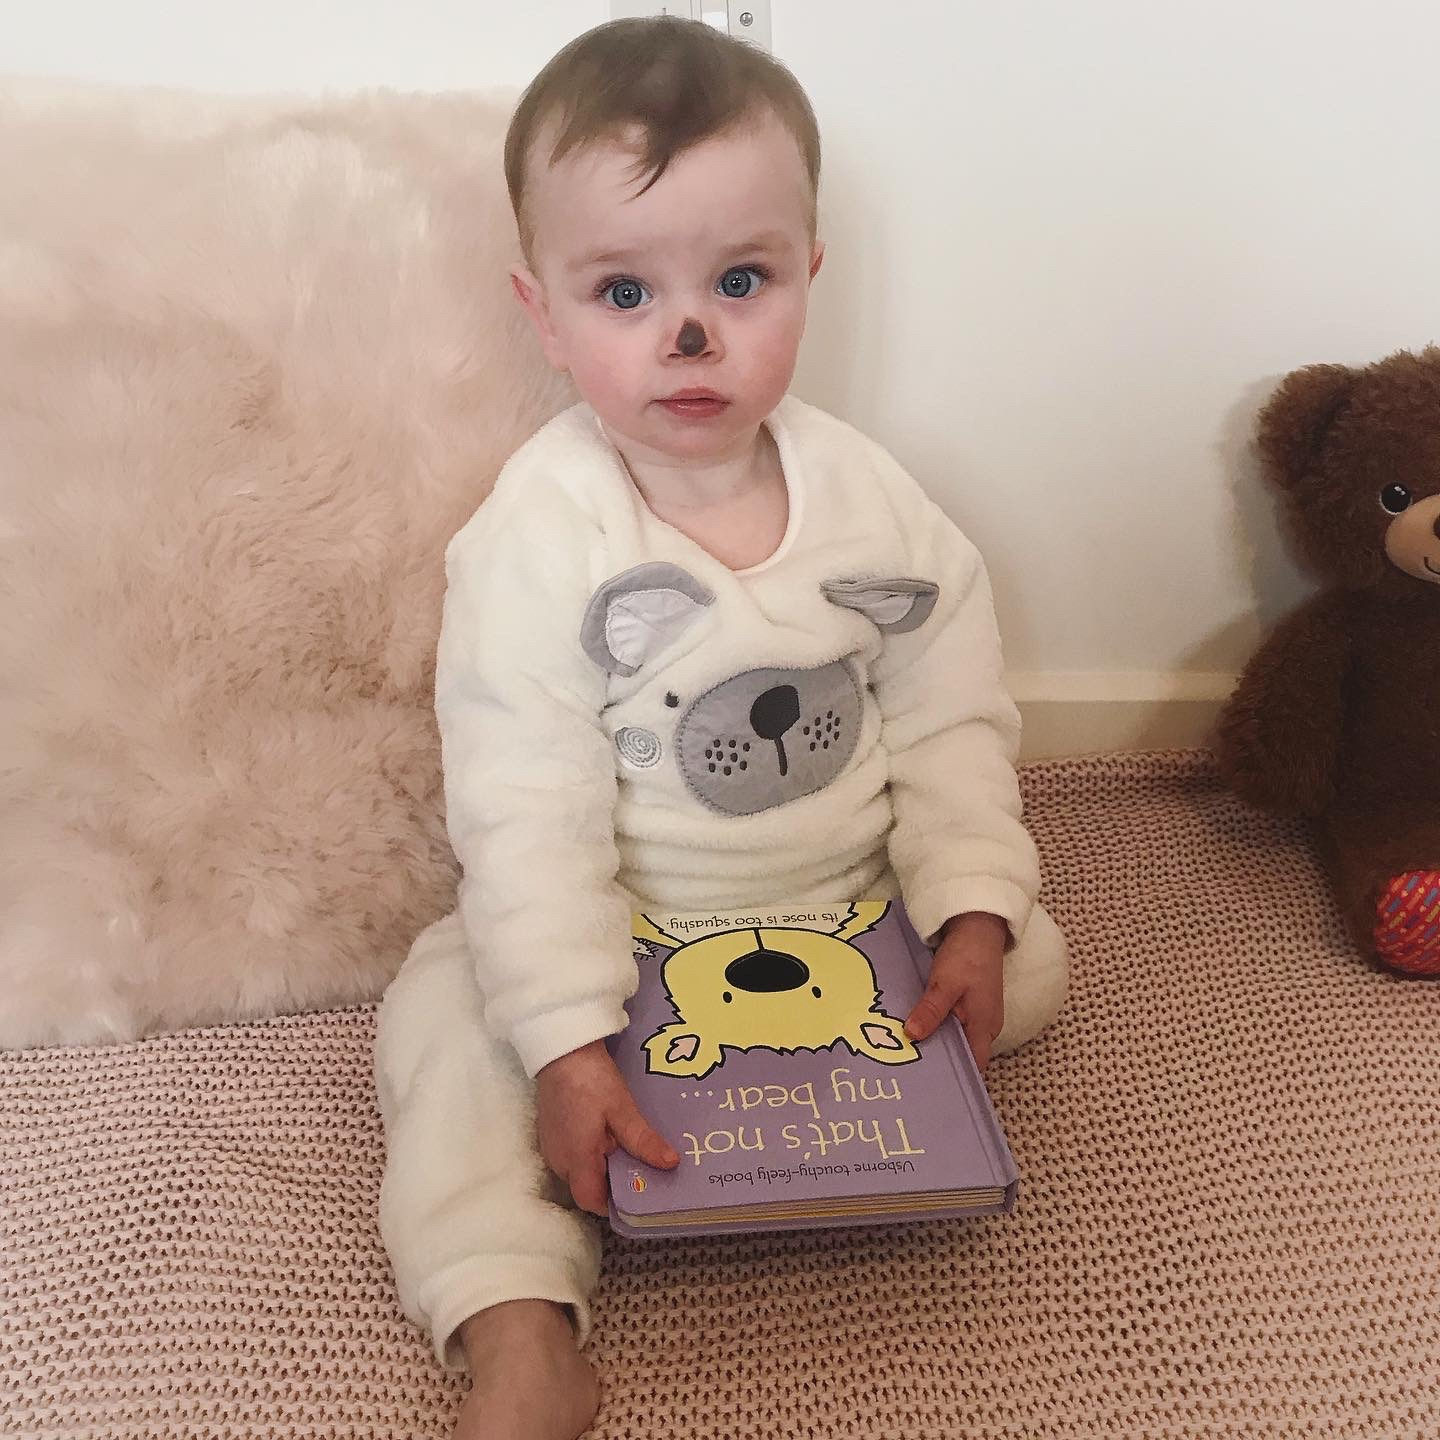 Droitwich Advertiser: I totally forgot it was World Book Day but didn't want to let it pass without doing anything. So we improvised! Indie does genuinely love this book though, which helped! She loves sticking her tongue out, just like the polar bear in the book!